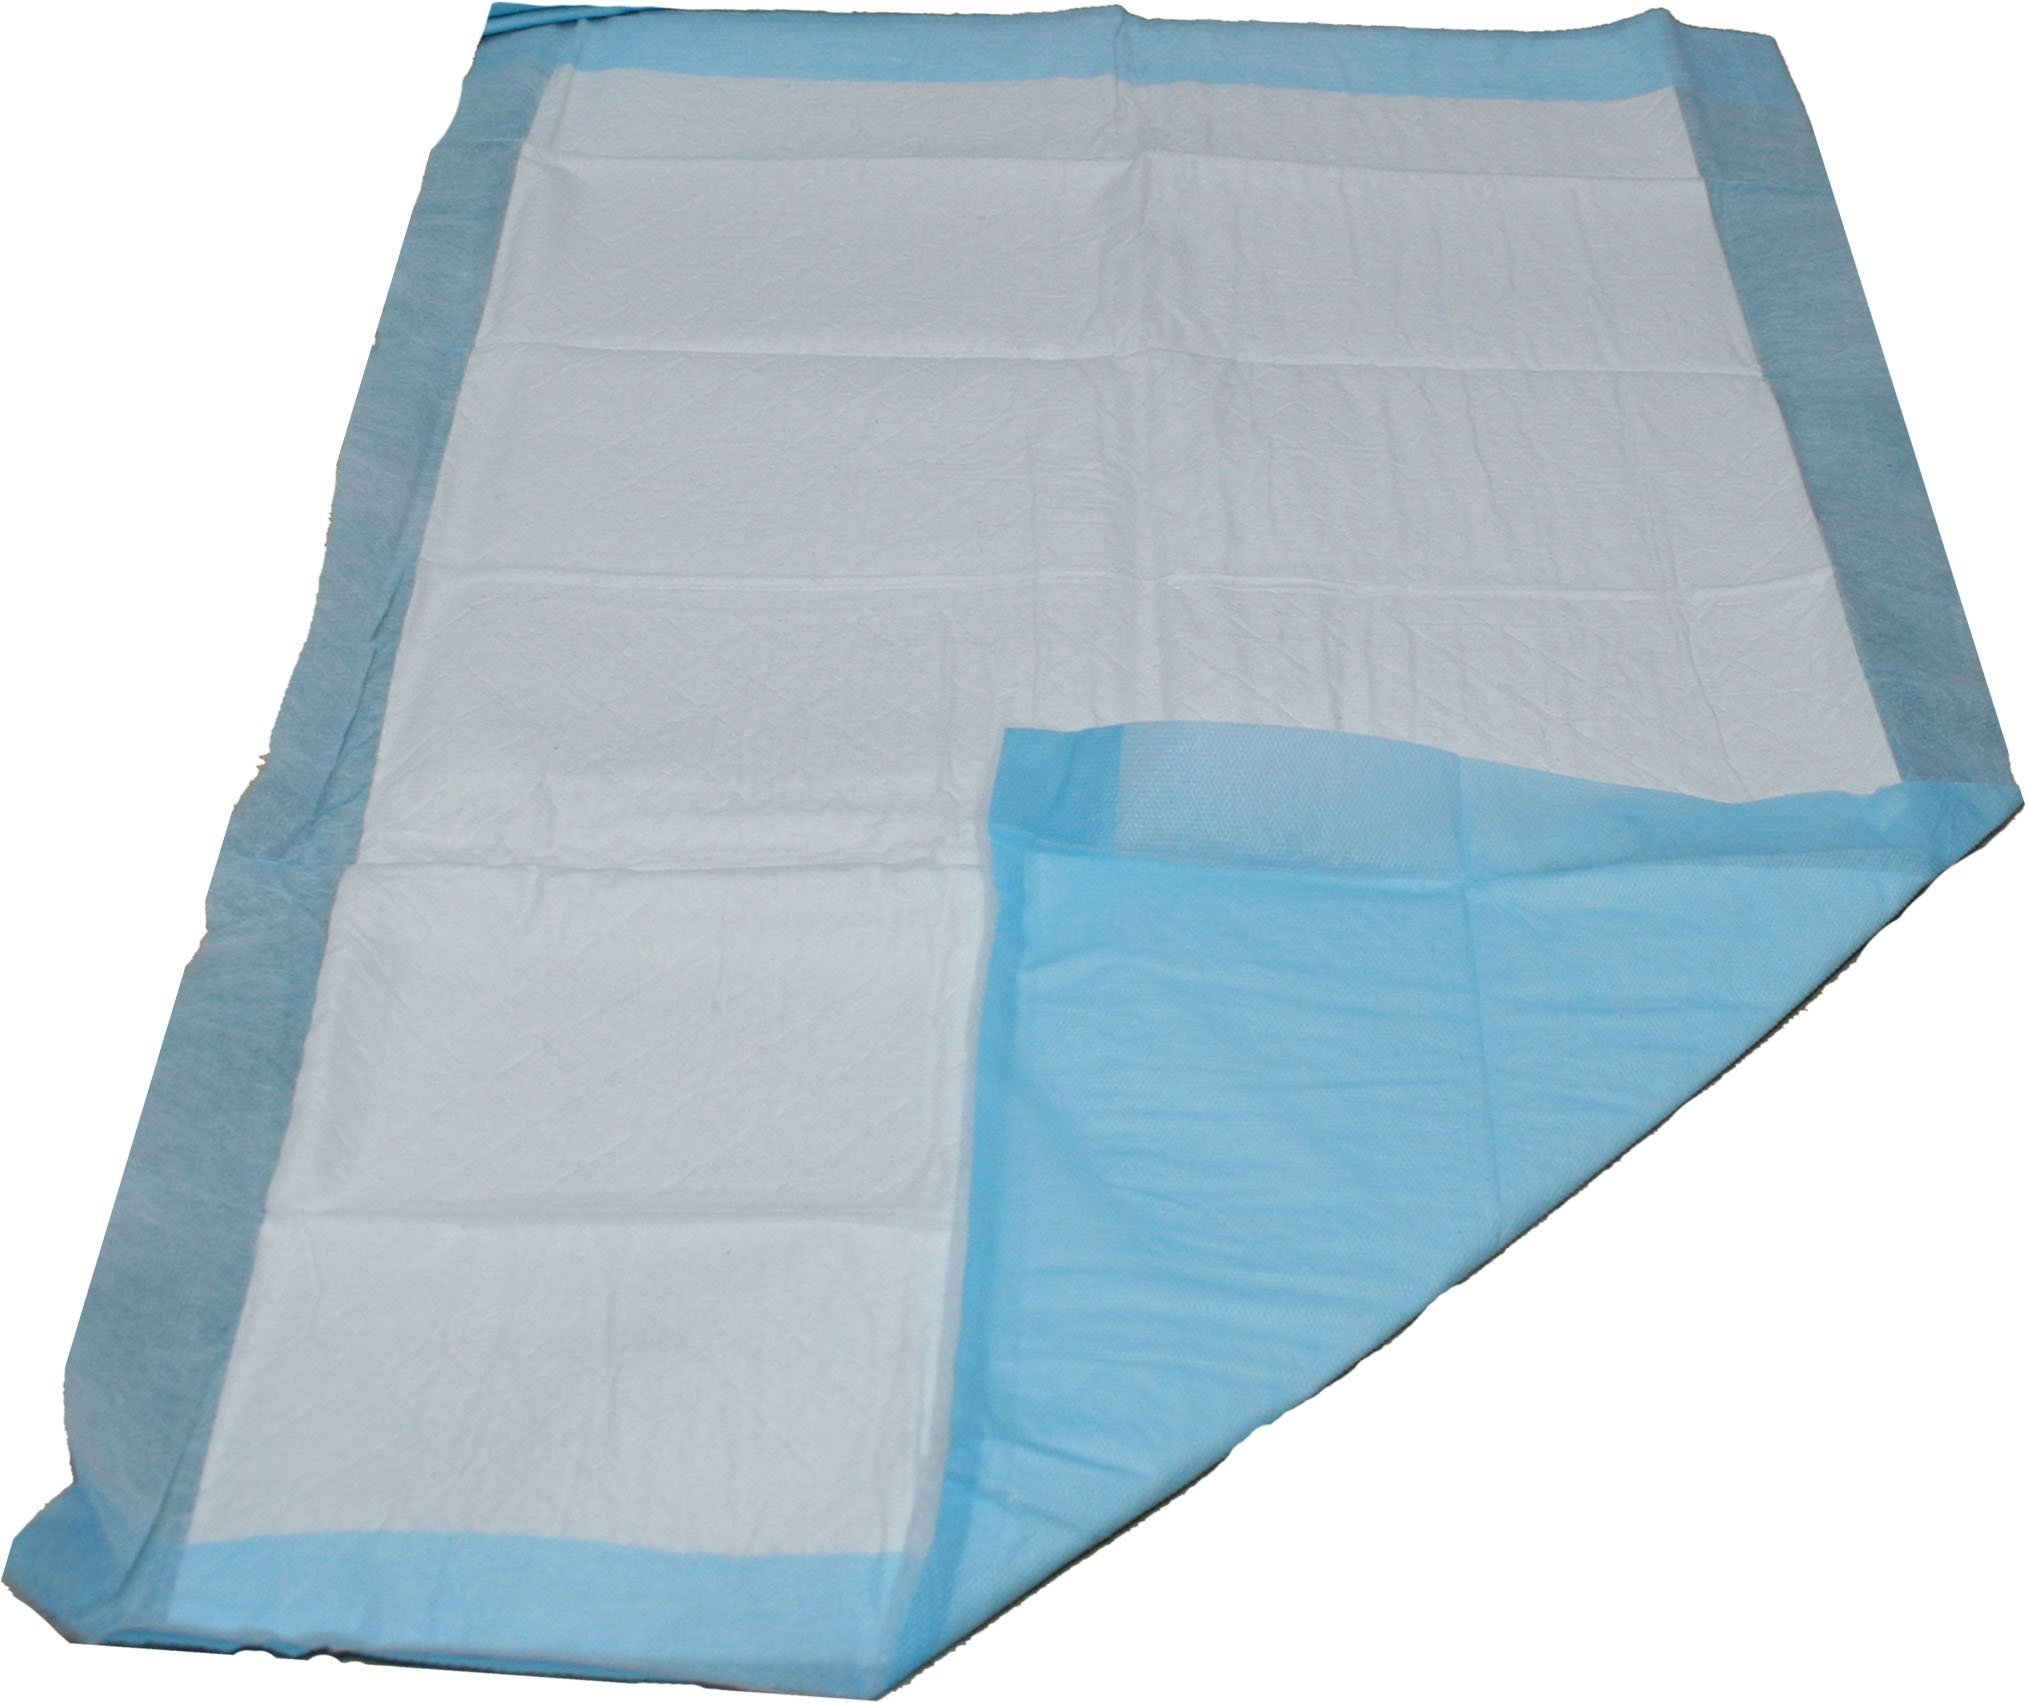 Readi Disposable Incontinence Bed Pads 60 X 90Cm 1400Ml Absorbency - Pack Of 100